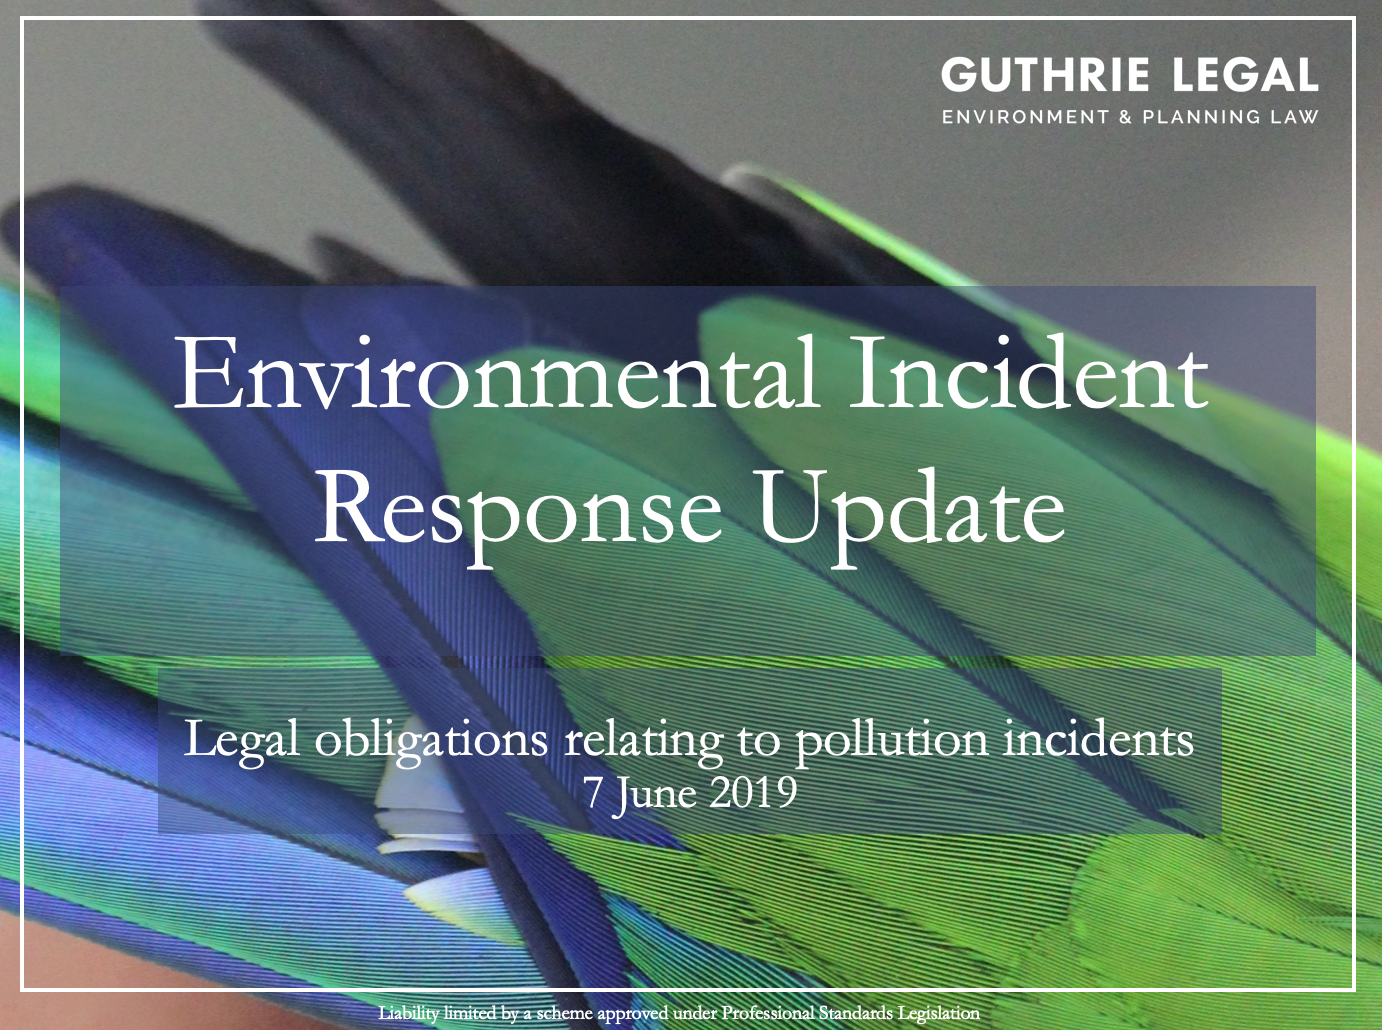 Environmental Incident Response - Guthrie Legal